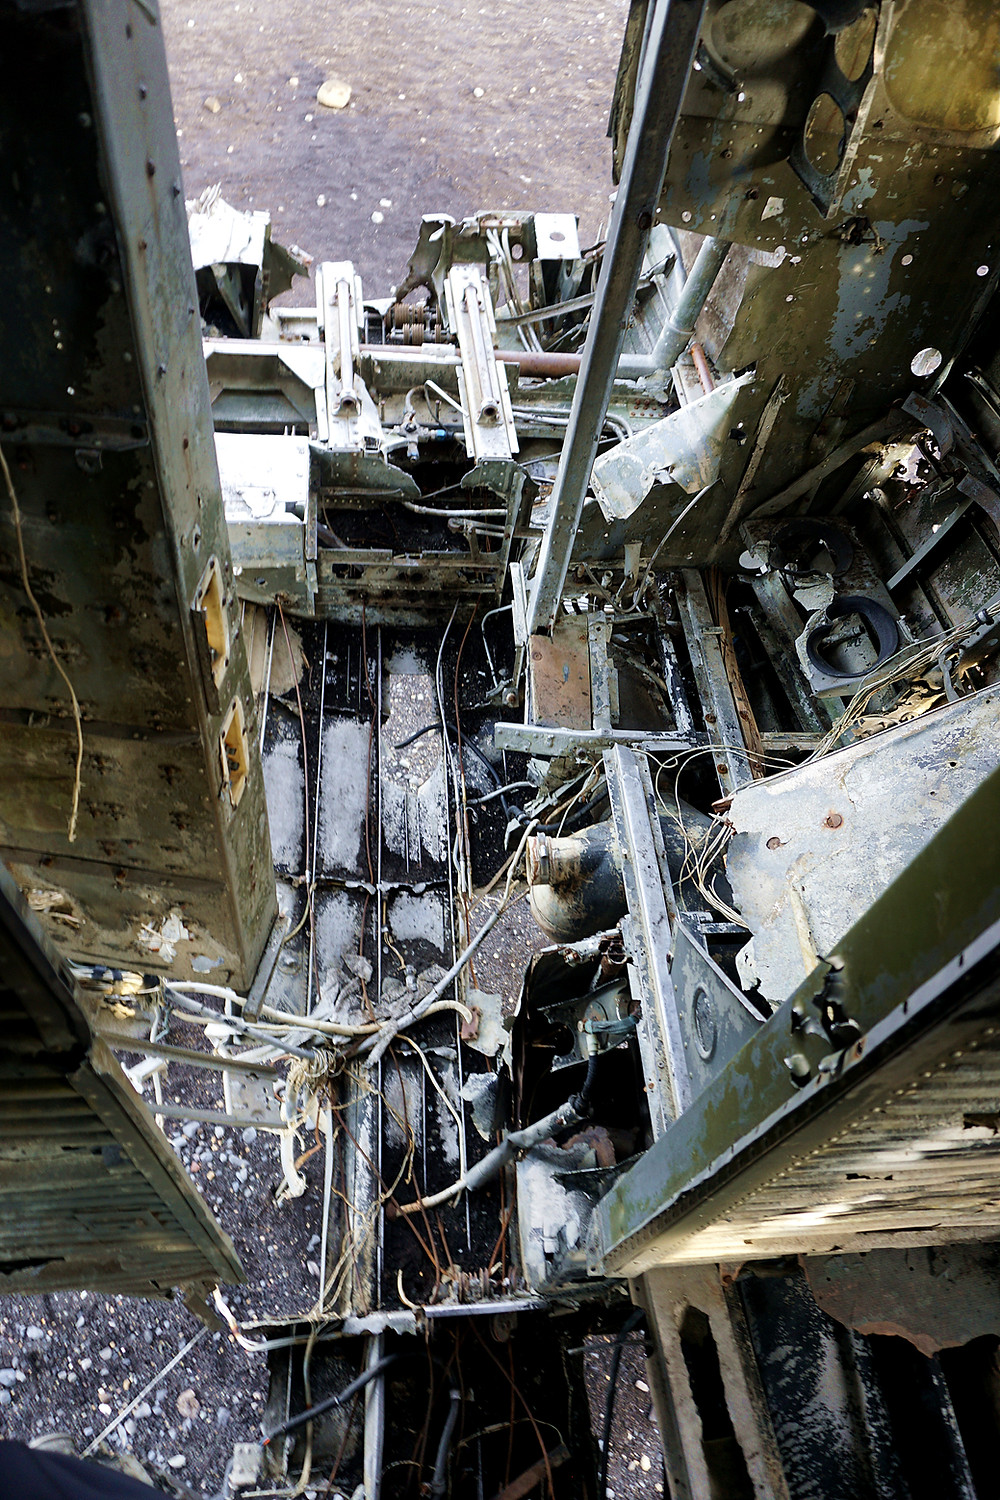 Around the cockpit of the crashed plane.